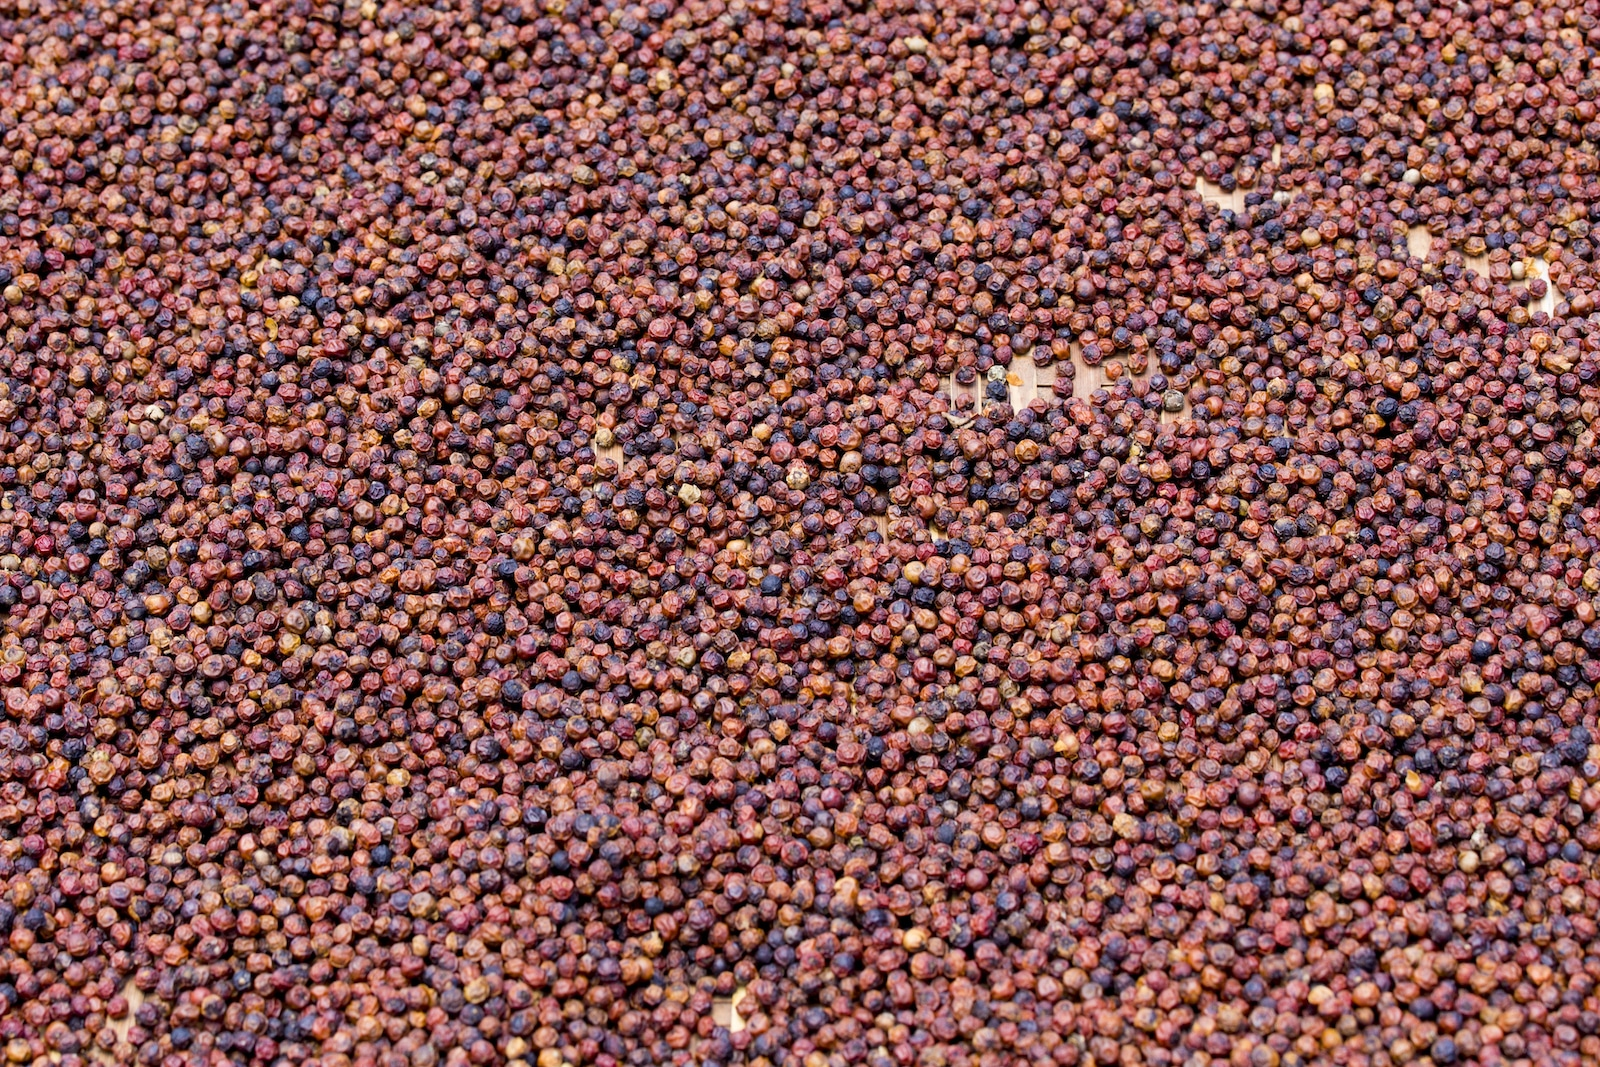 Kampot Pepper: The World's Best Black Pepper